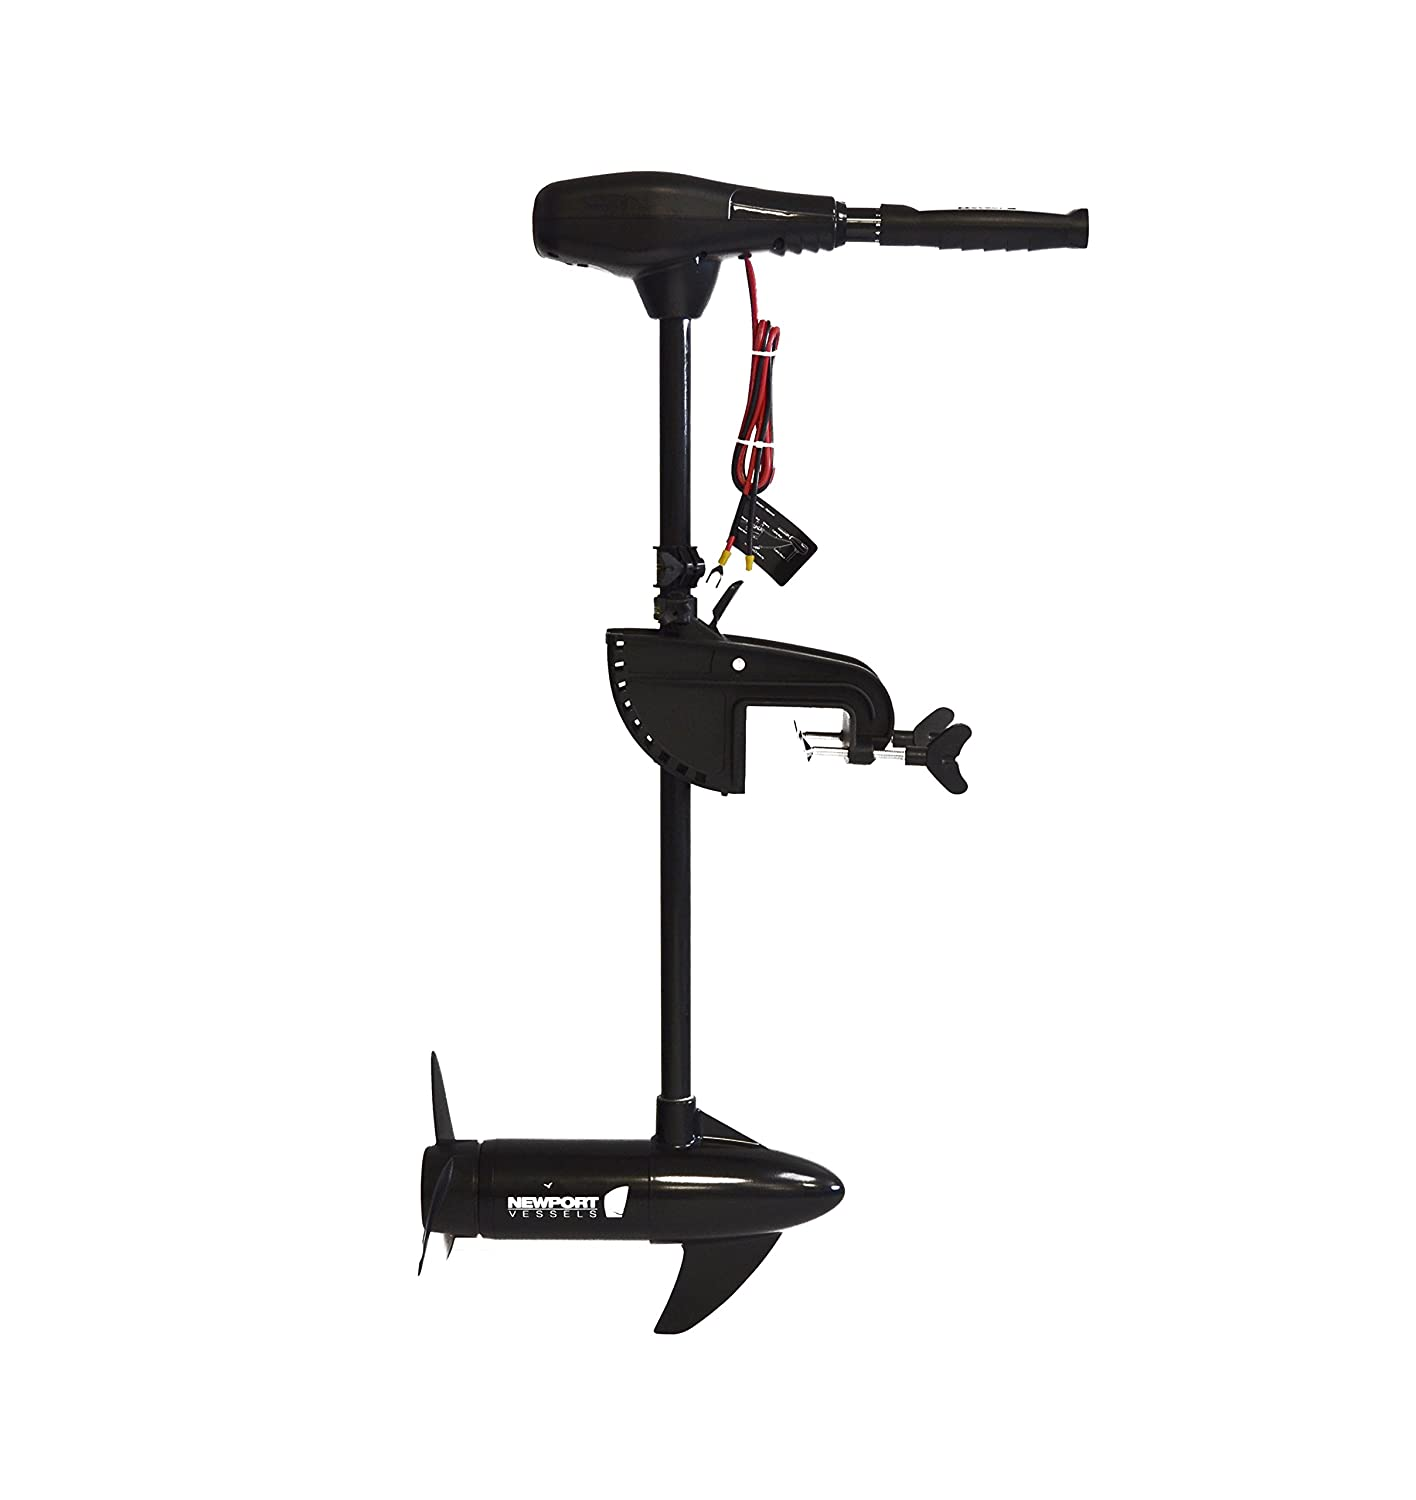 Newport Vessels 55 Pound Thrust 8 Speed Electric Trolling